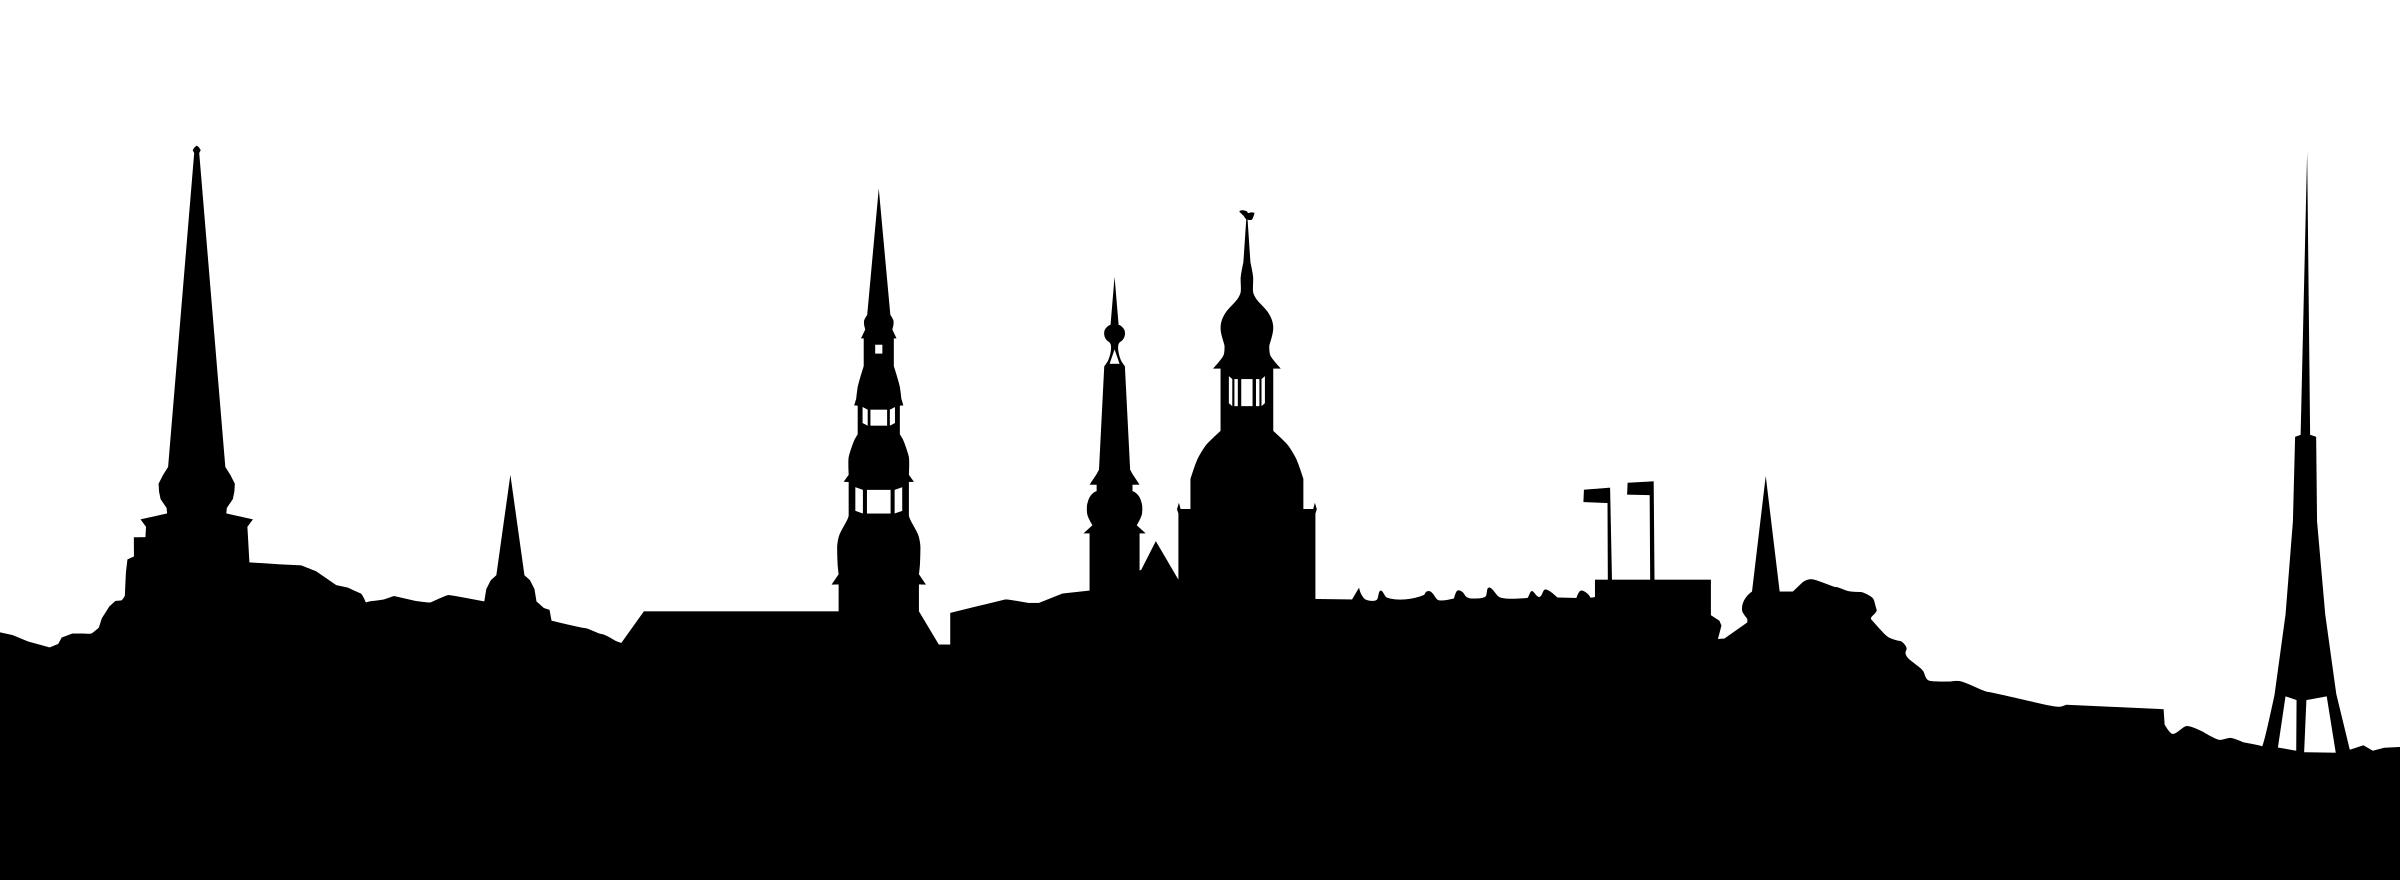 2400x880 Silhouette Of Riga Icons Png